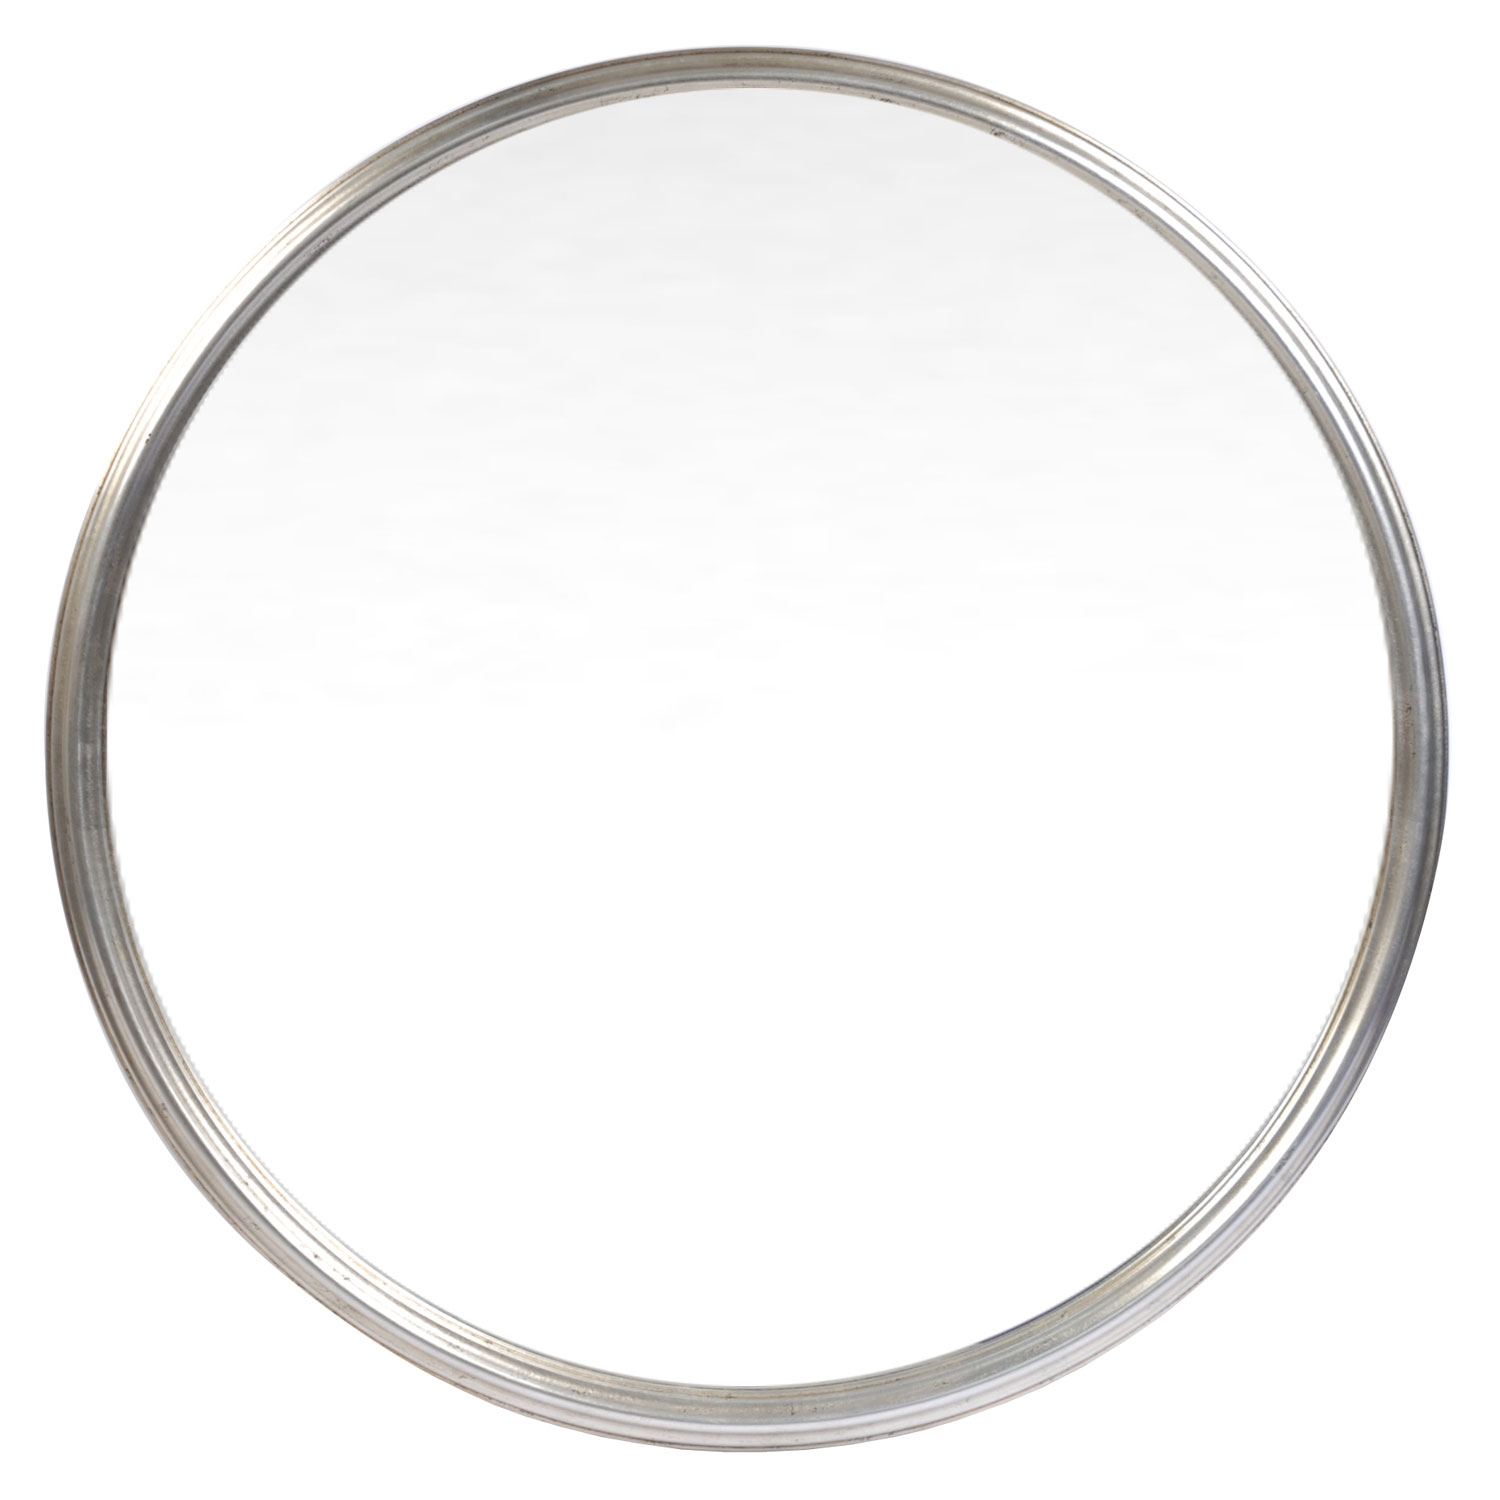 Classic Silver Round Mirror Round Mirrors Mirrors Home Decor Intended For Silver Round Mirrors (Image 4 of 15)